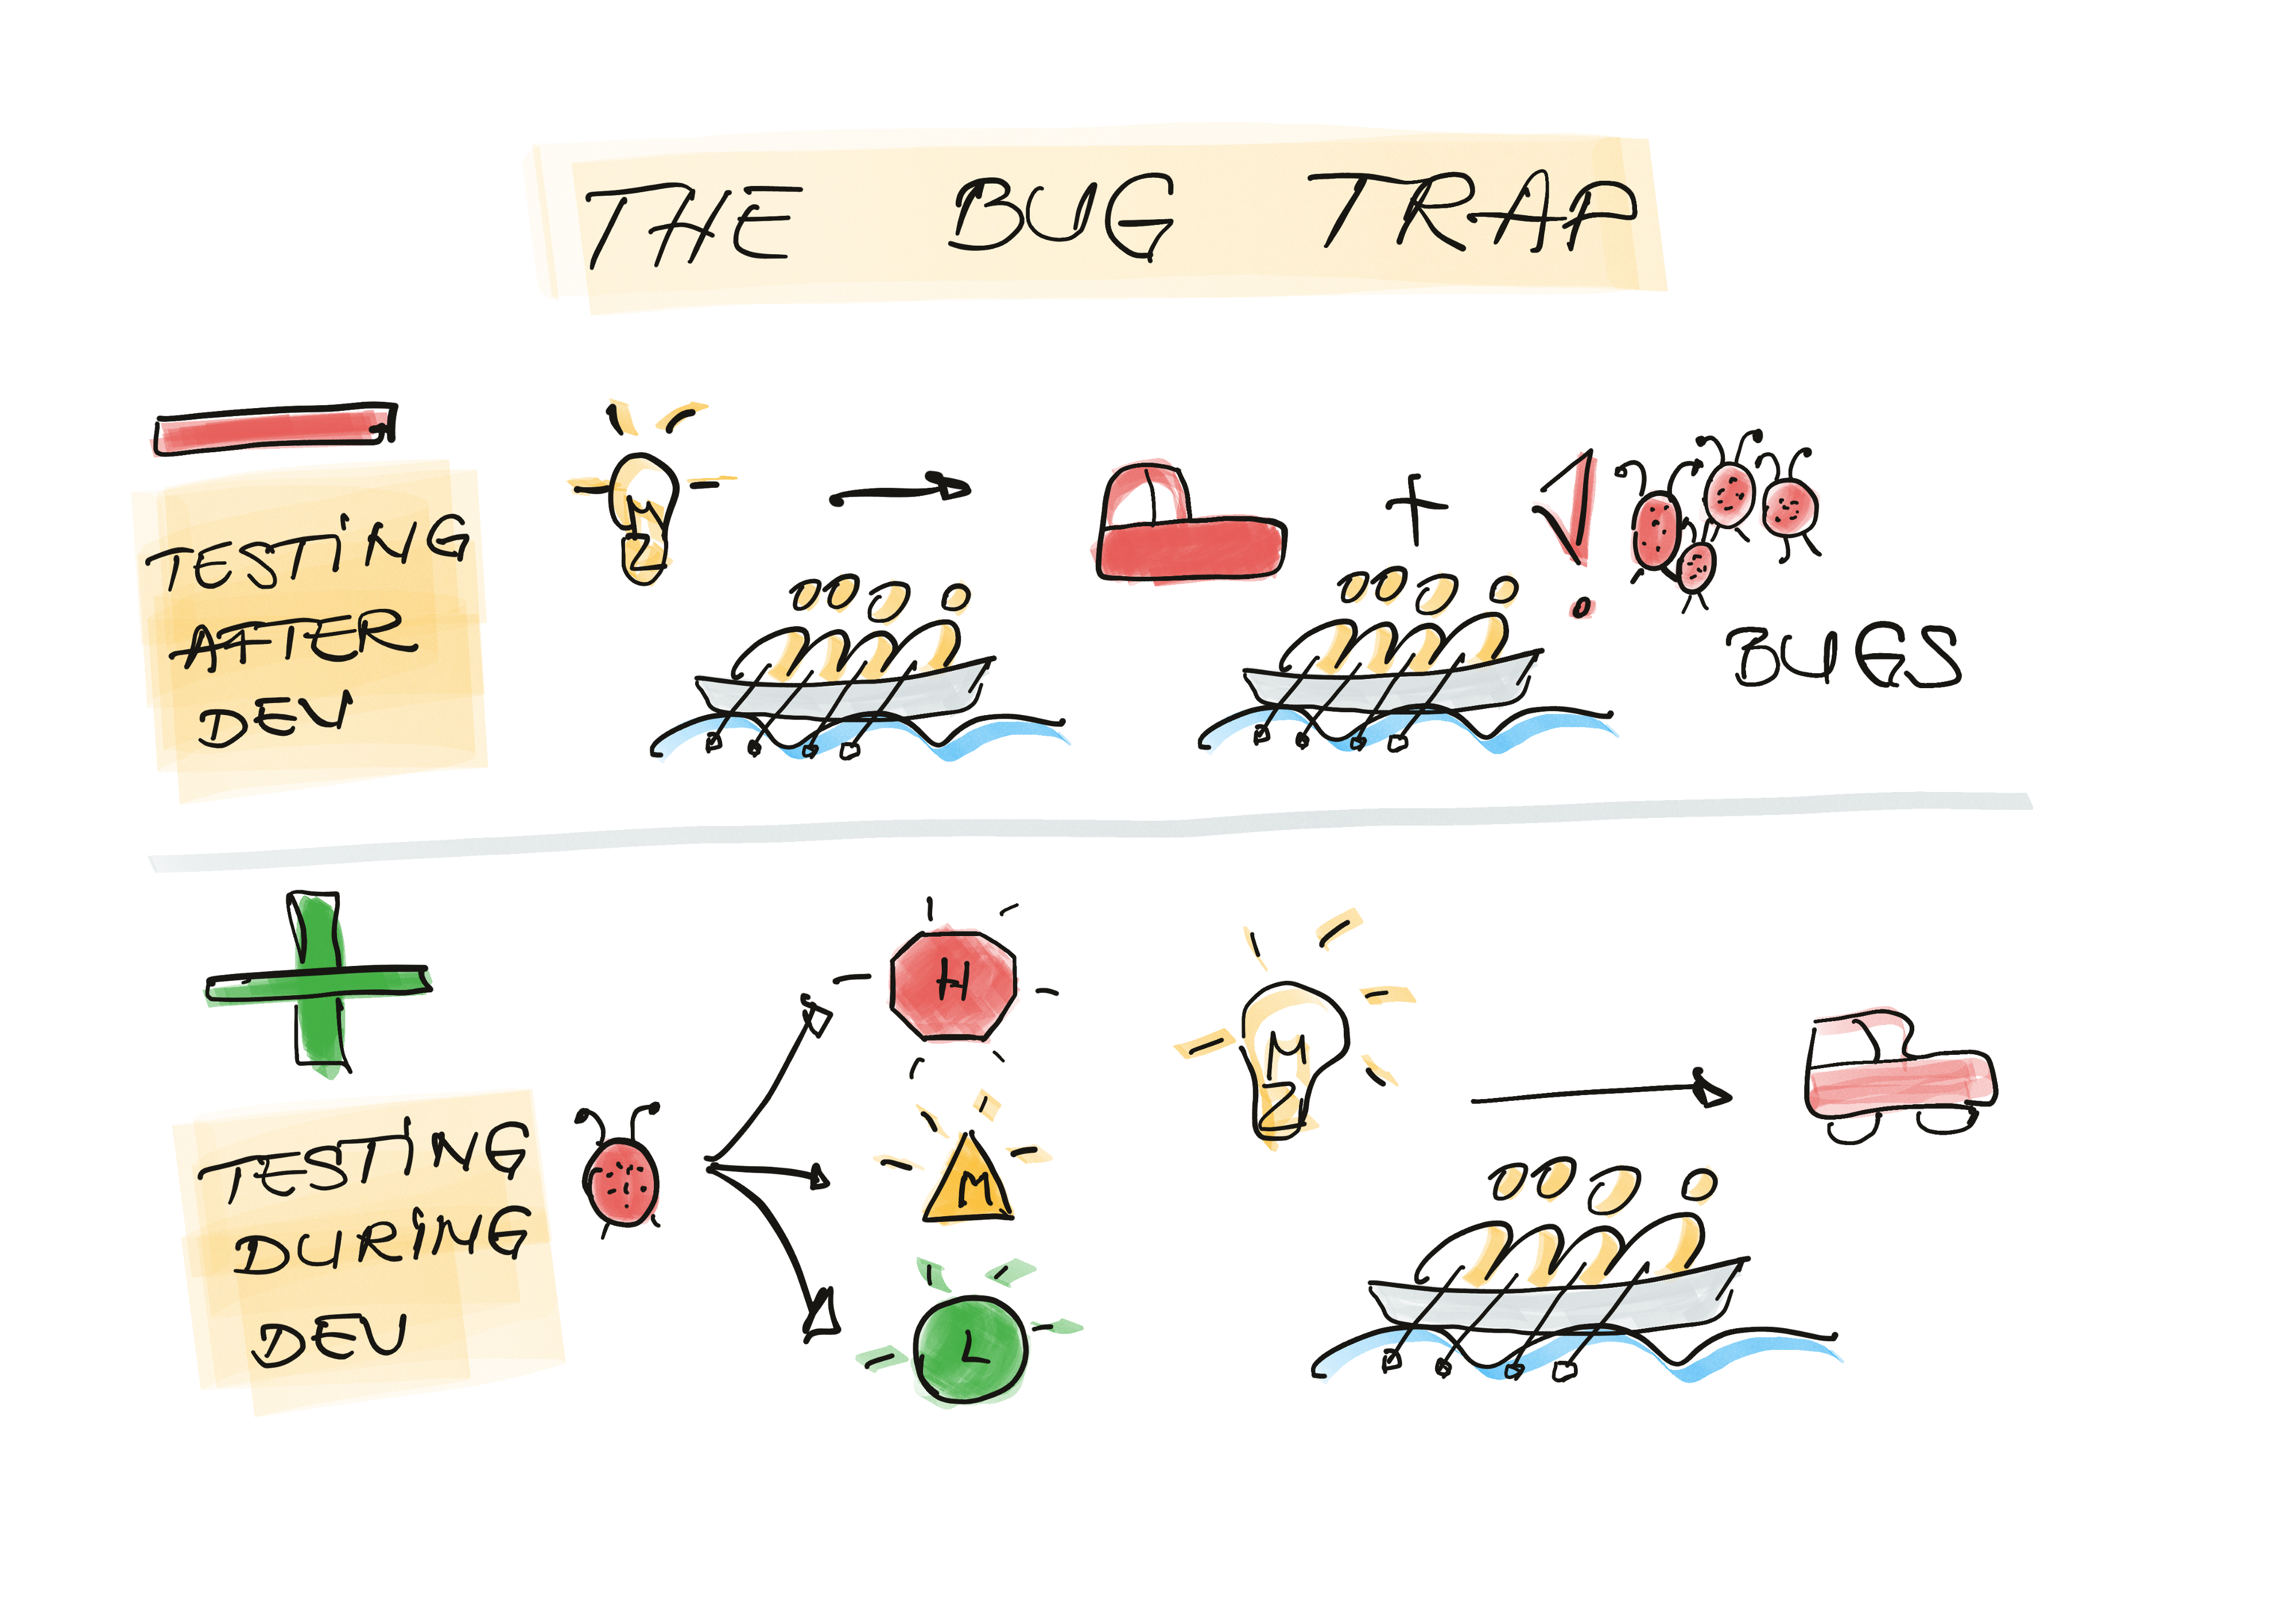 Agile Bugs: The process of managing bugs in agile versus the waterfall process. In agile is part of definition of done.